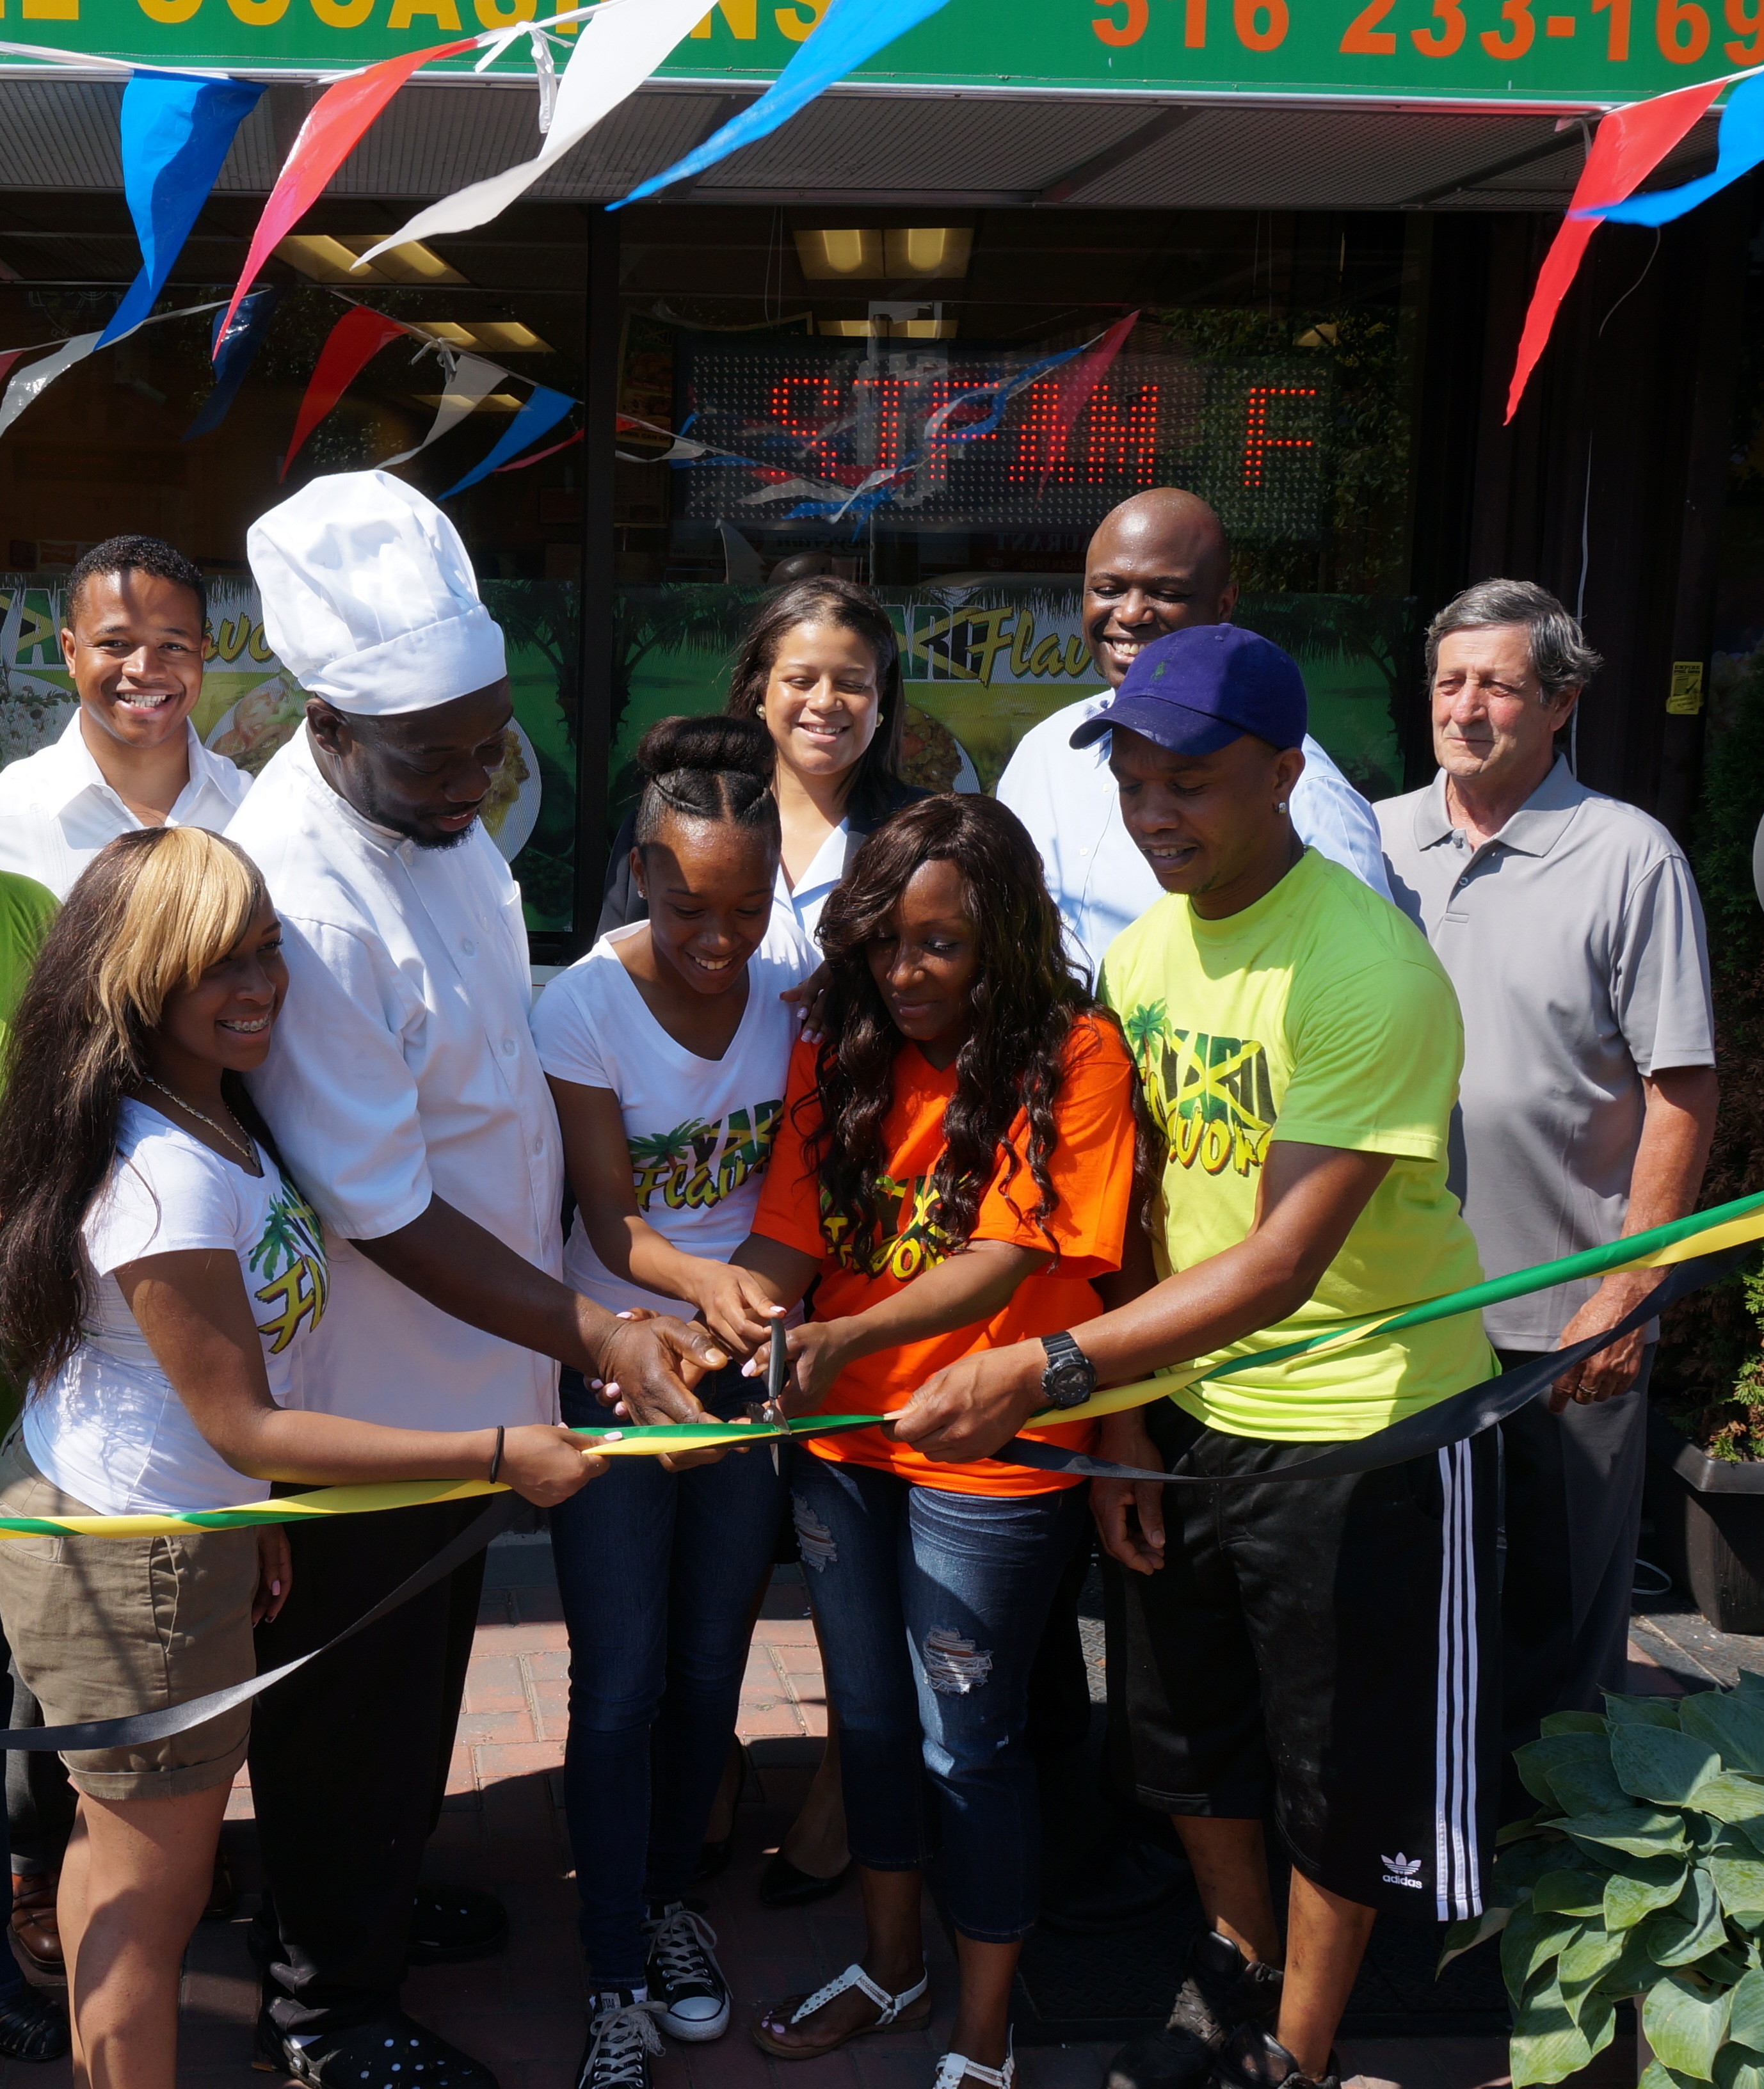 Assemblywoman Solages welcomes Yard Flavors to the Elmont business community.